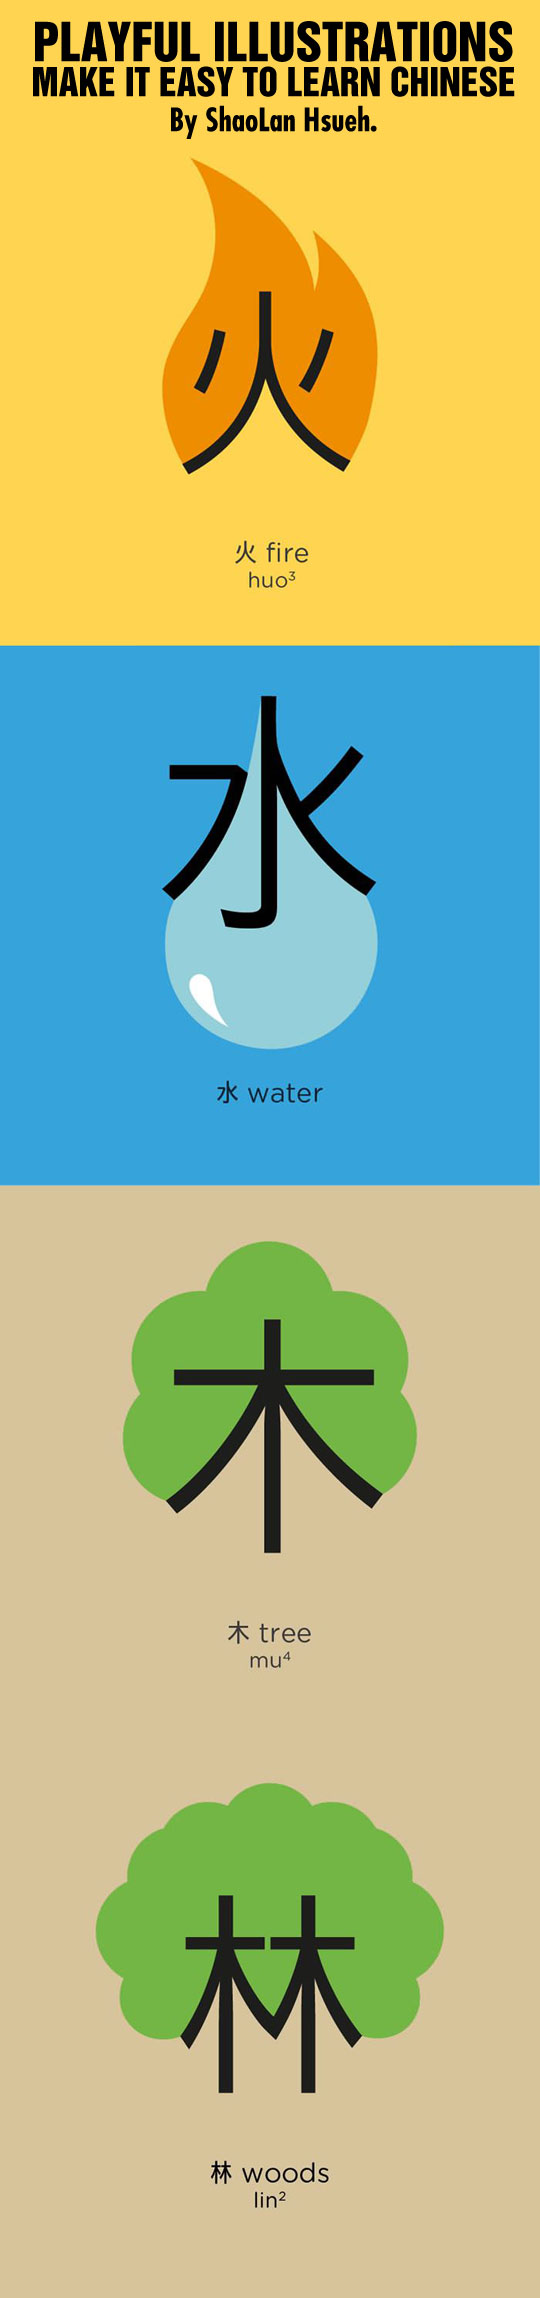 cool-playful-illustrations-Chinese-learning